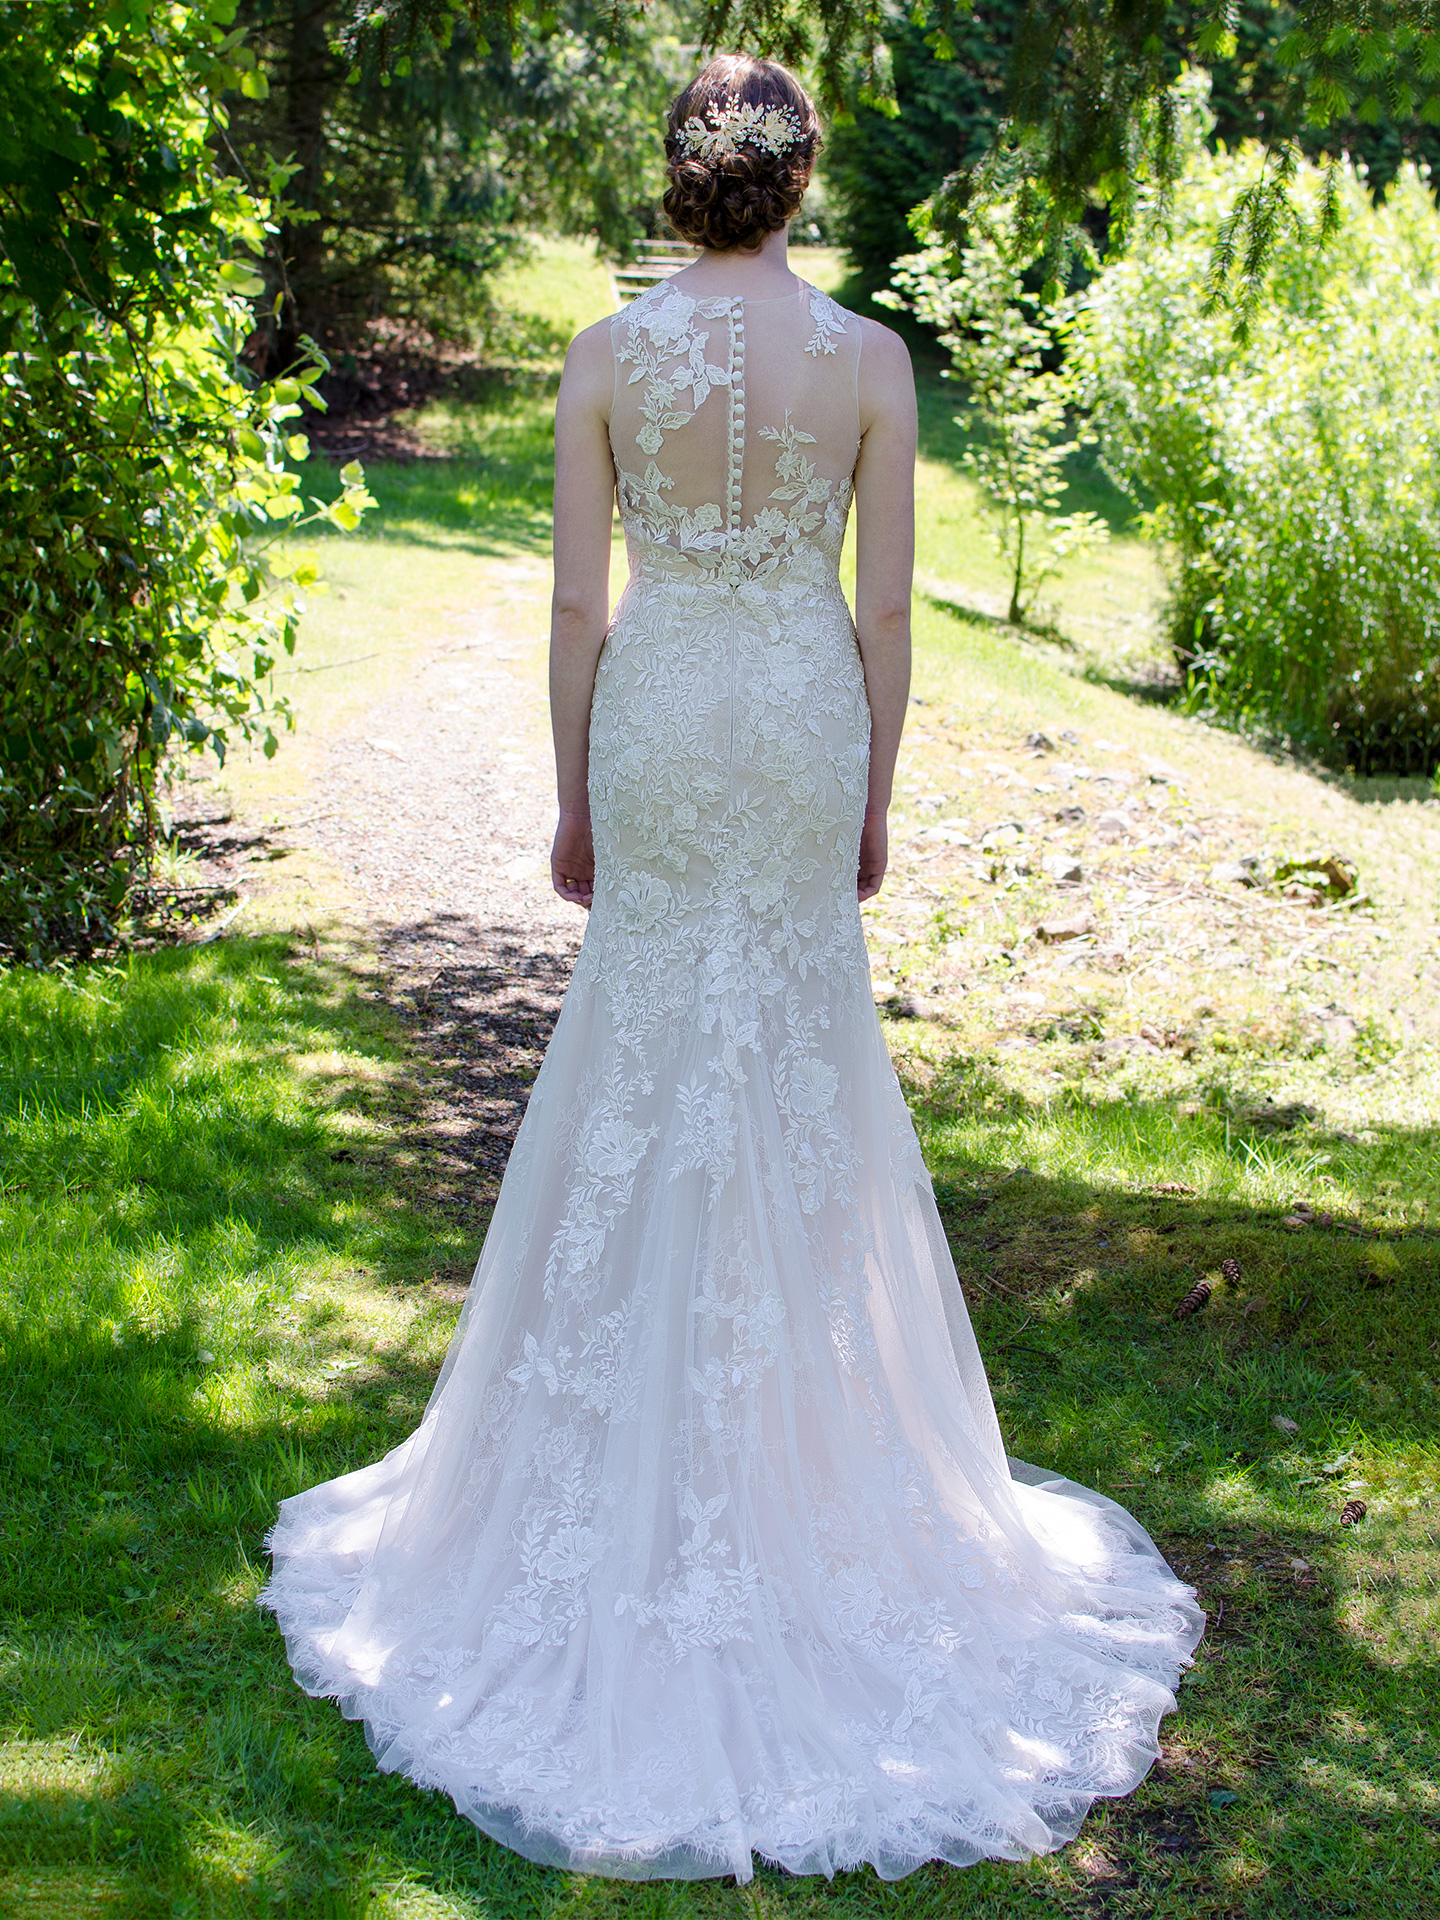 Sleeveless wedding dress 4054